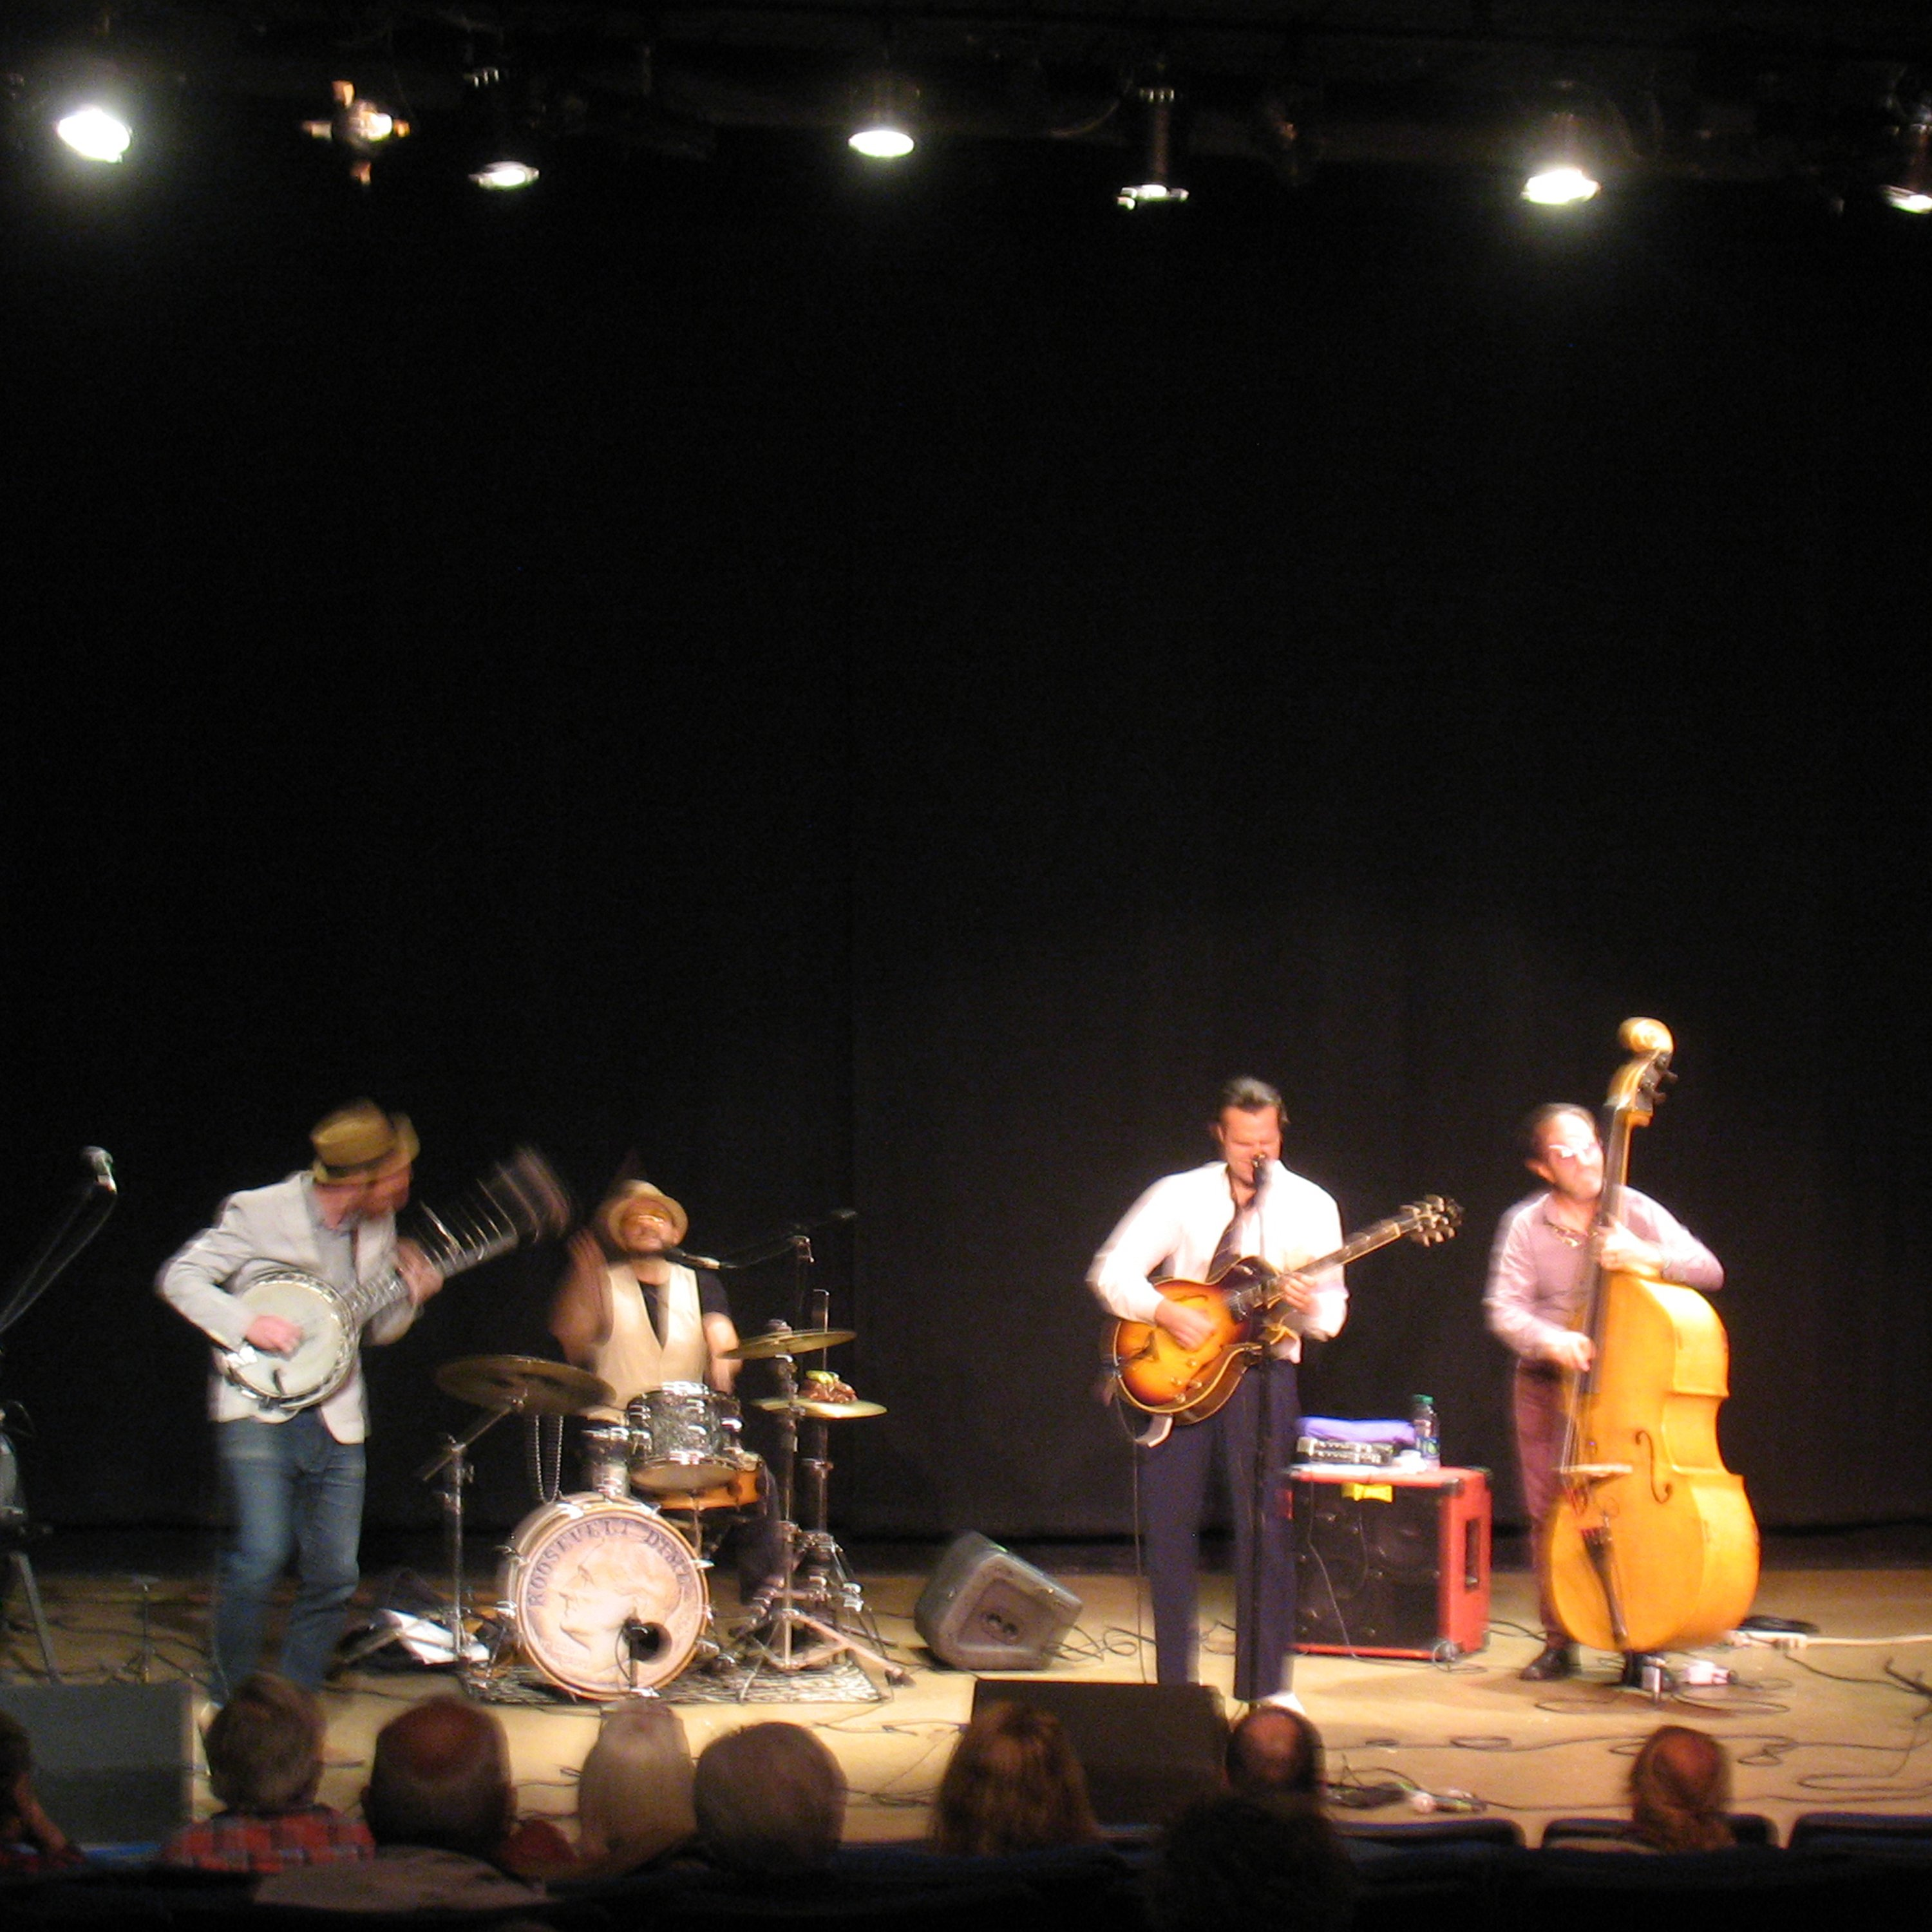 Roosevelt Dime performed at the RFA Lakeside Theater as part of The American Music Festival.